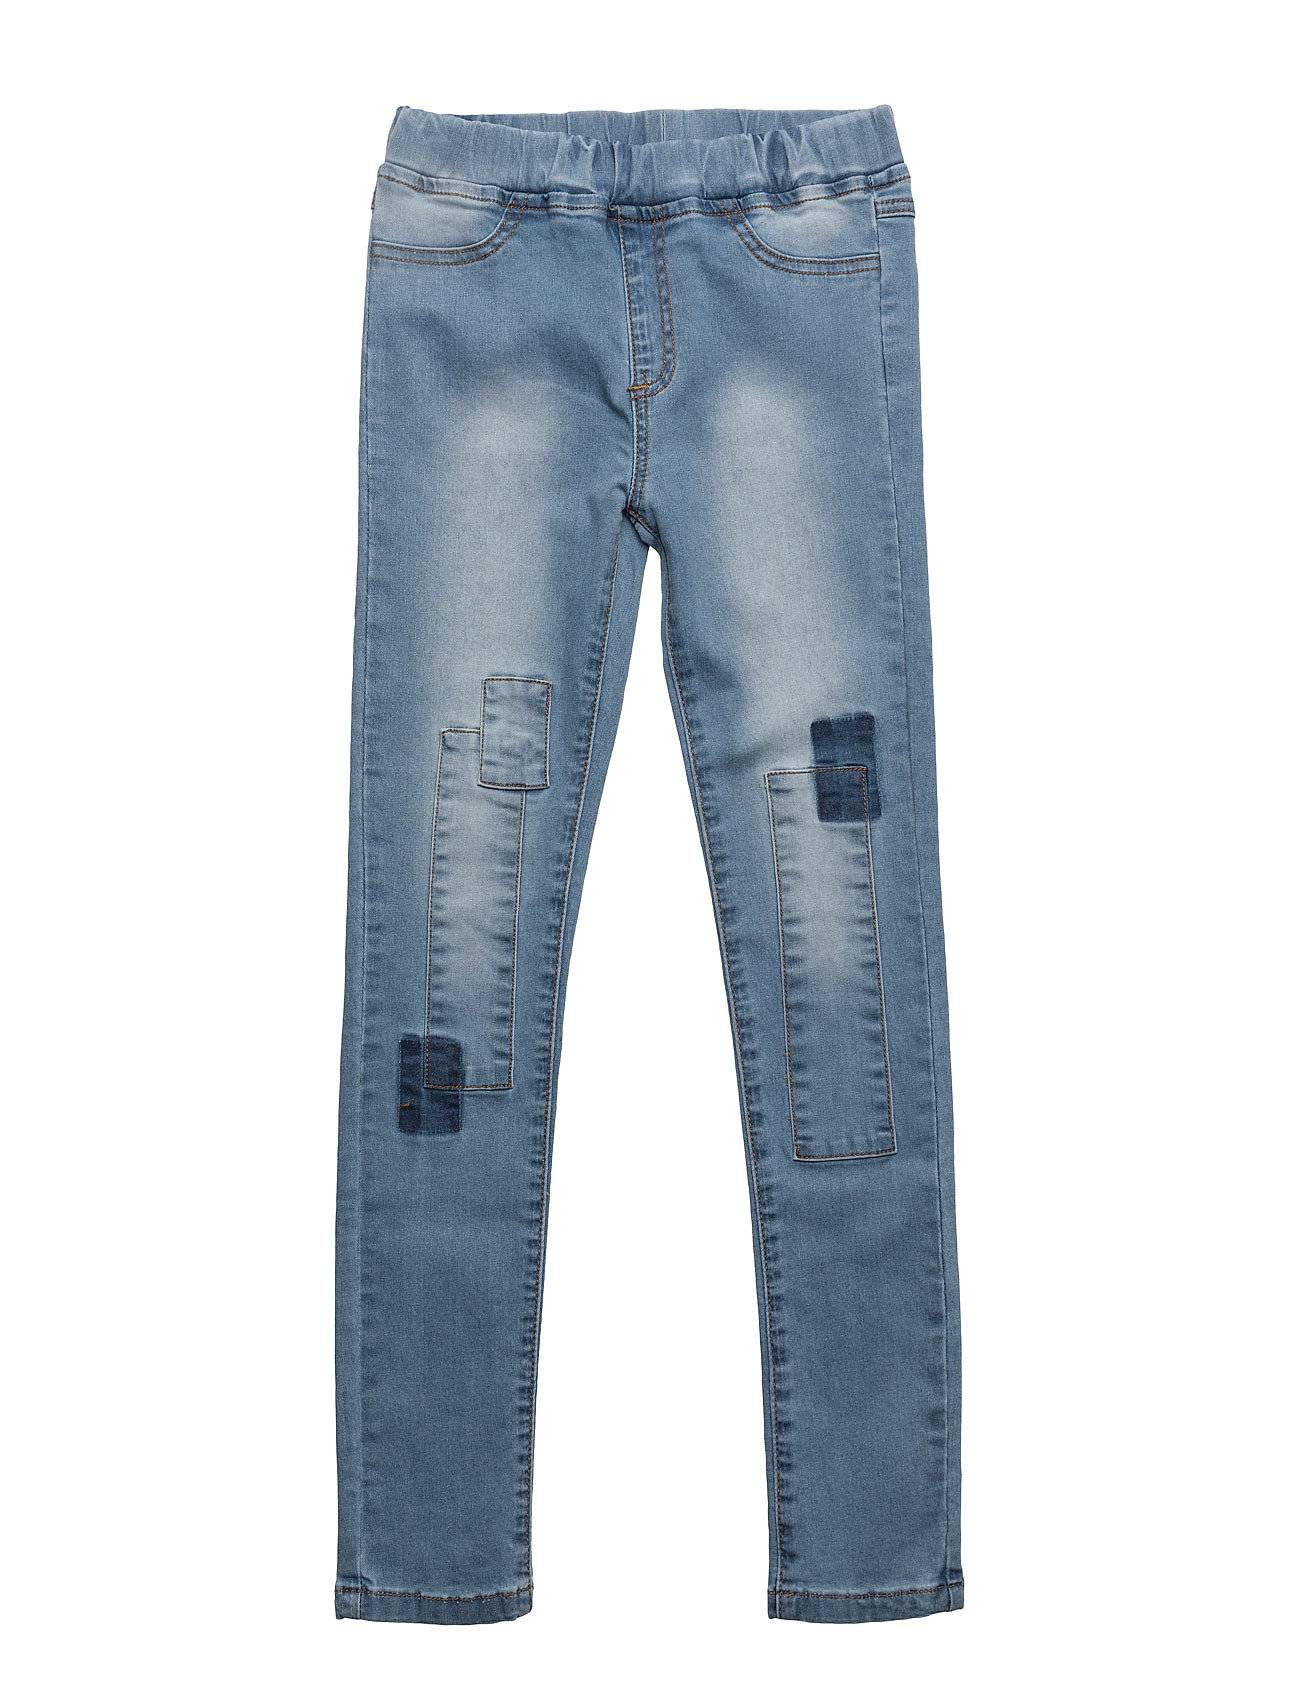 NOVA STAR Patched Slim Denim